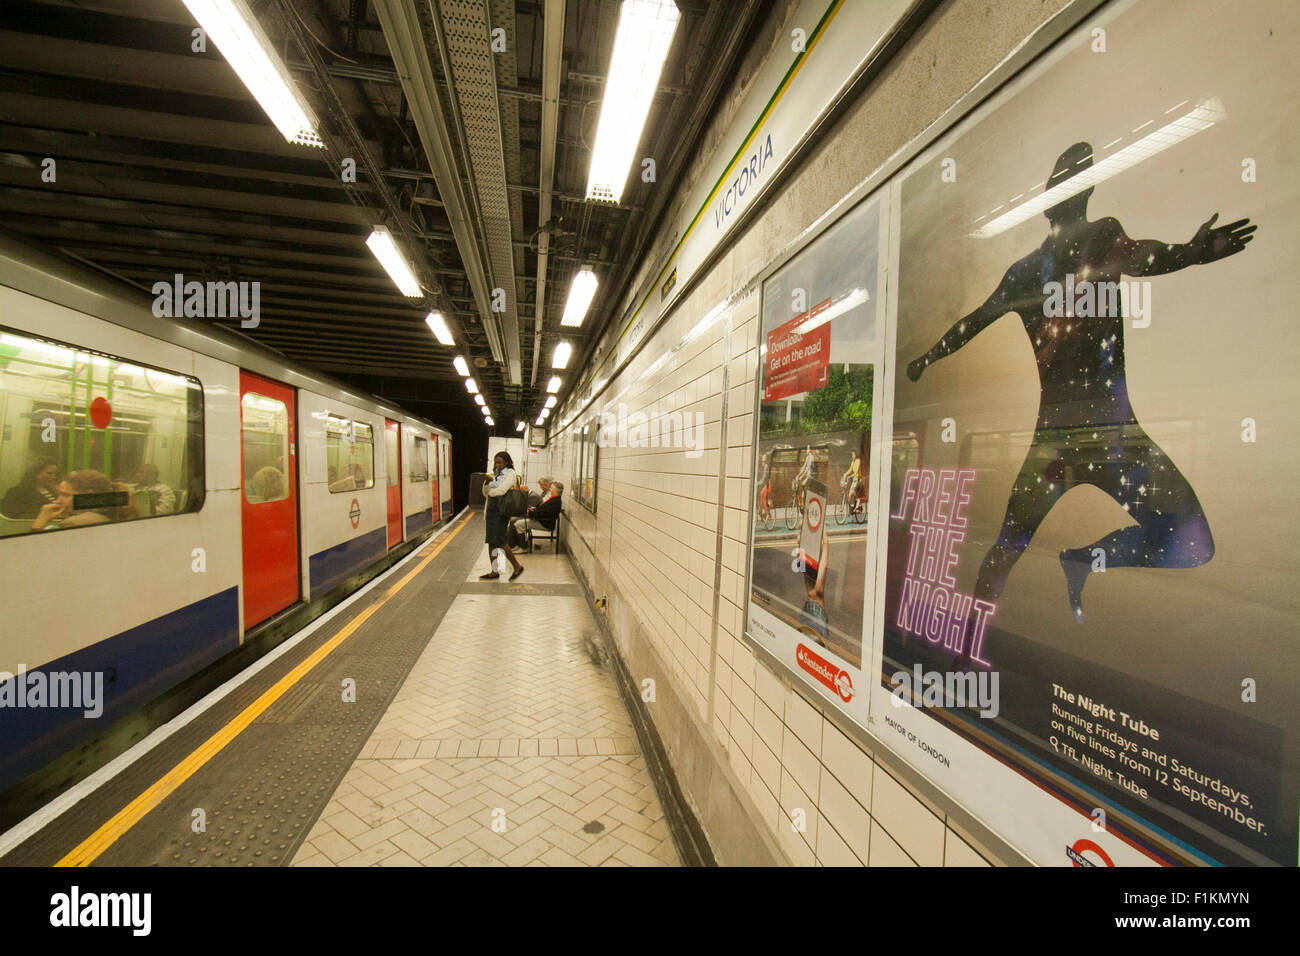 London,UK. 3rd September 2015. London Underground has delayed the start of the Night Tube scheduled for September - Stock Image